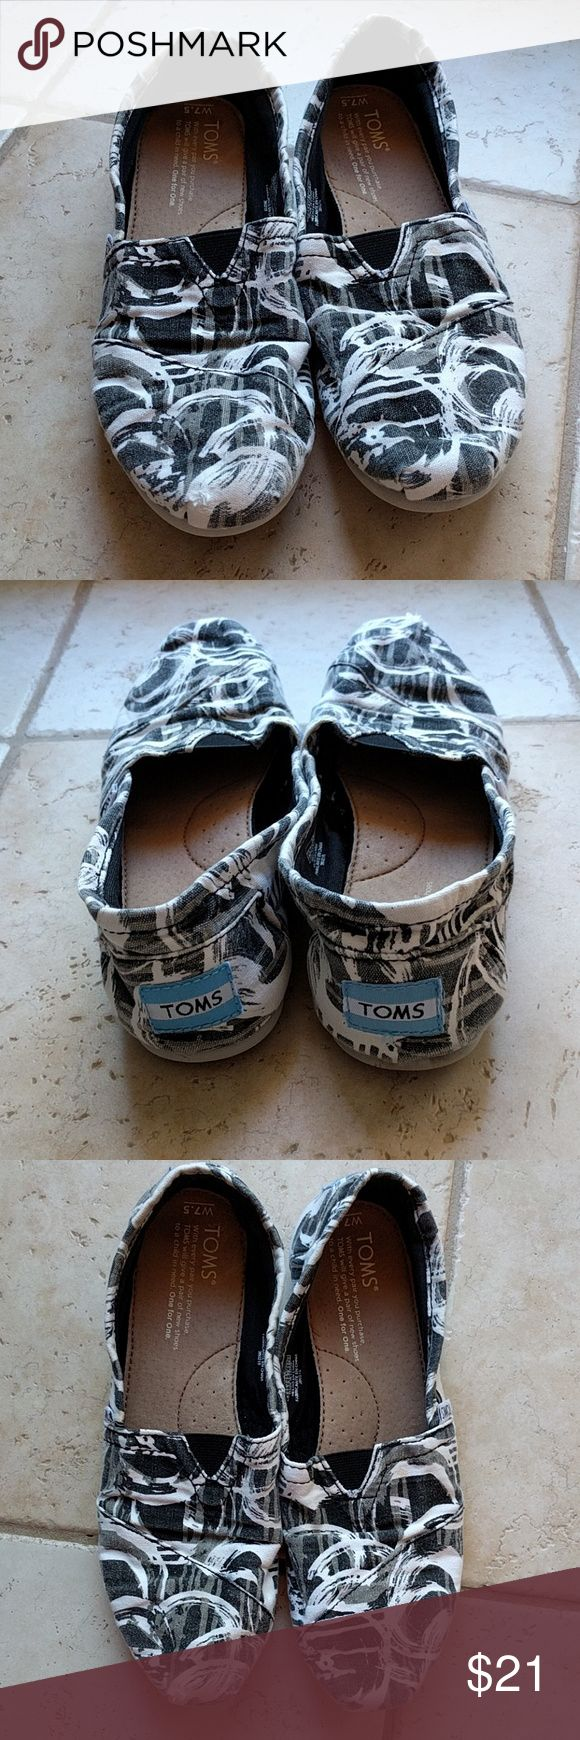 Toms with Fun Black, Gray, & White Pattern Good used condition, freshly washed Toms. No funk or smells, insoles are clean. Tad bit of wear on the toes and a bit of fading. Tiny stain on top of the right Tom the size of a pin head. Looks like a drop of coffee hit it. TOMS Shoes Flats & Loafers